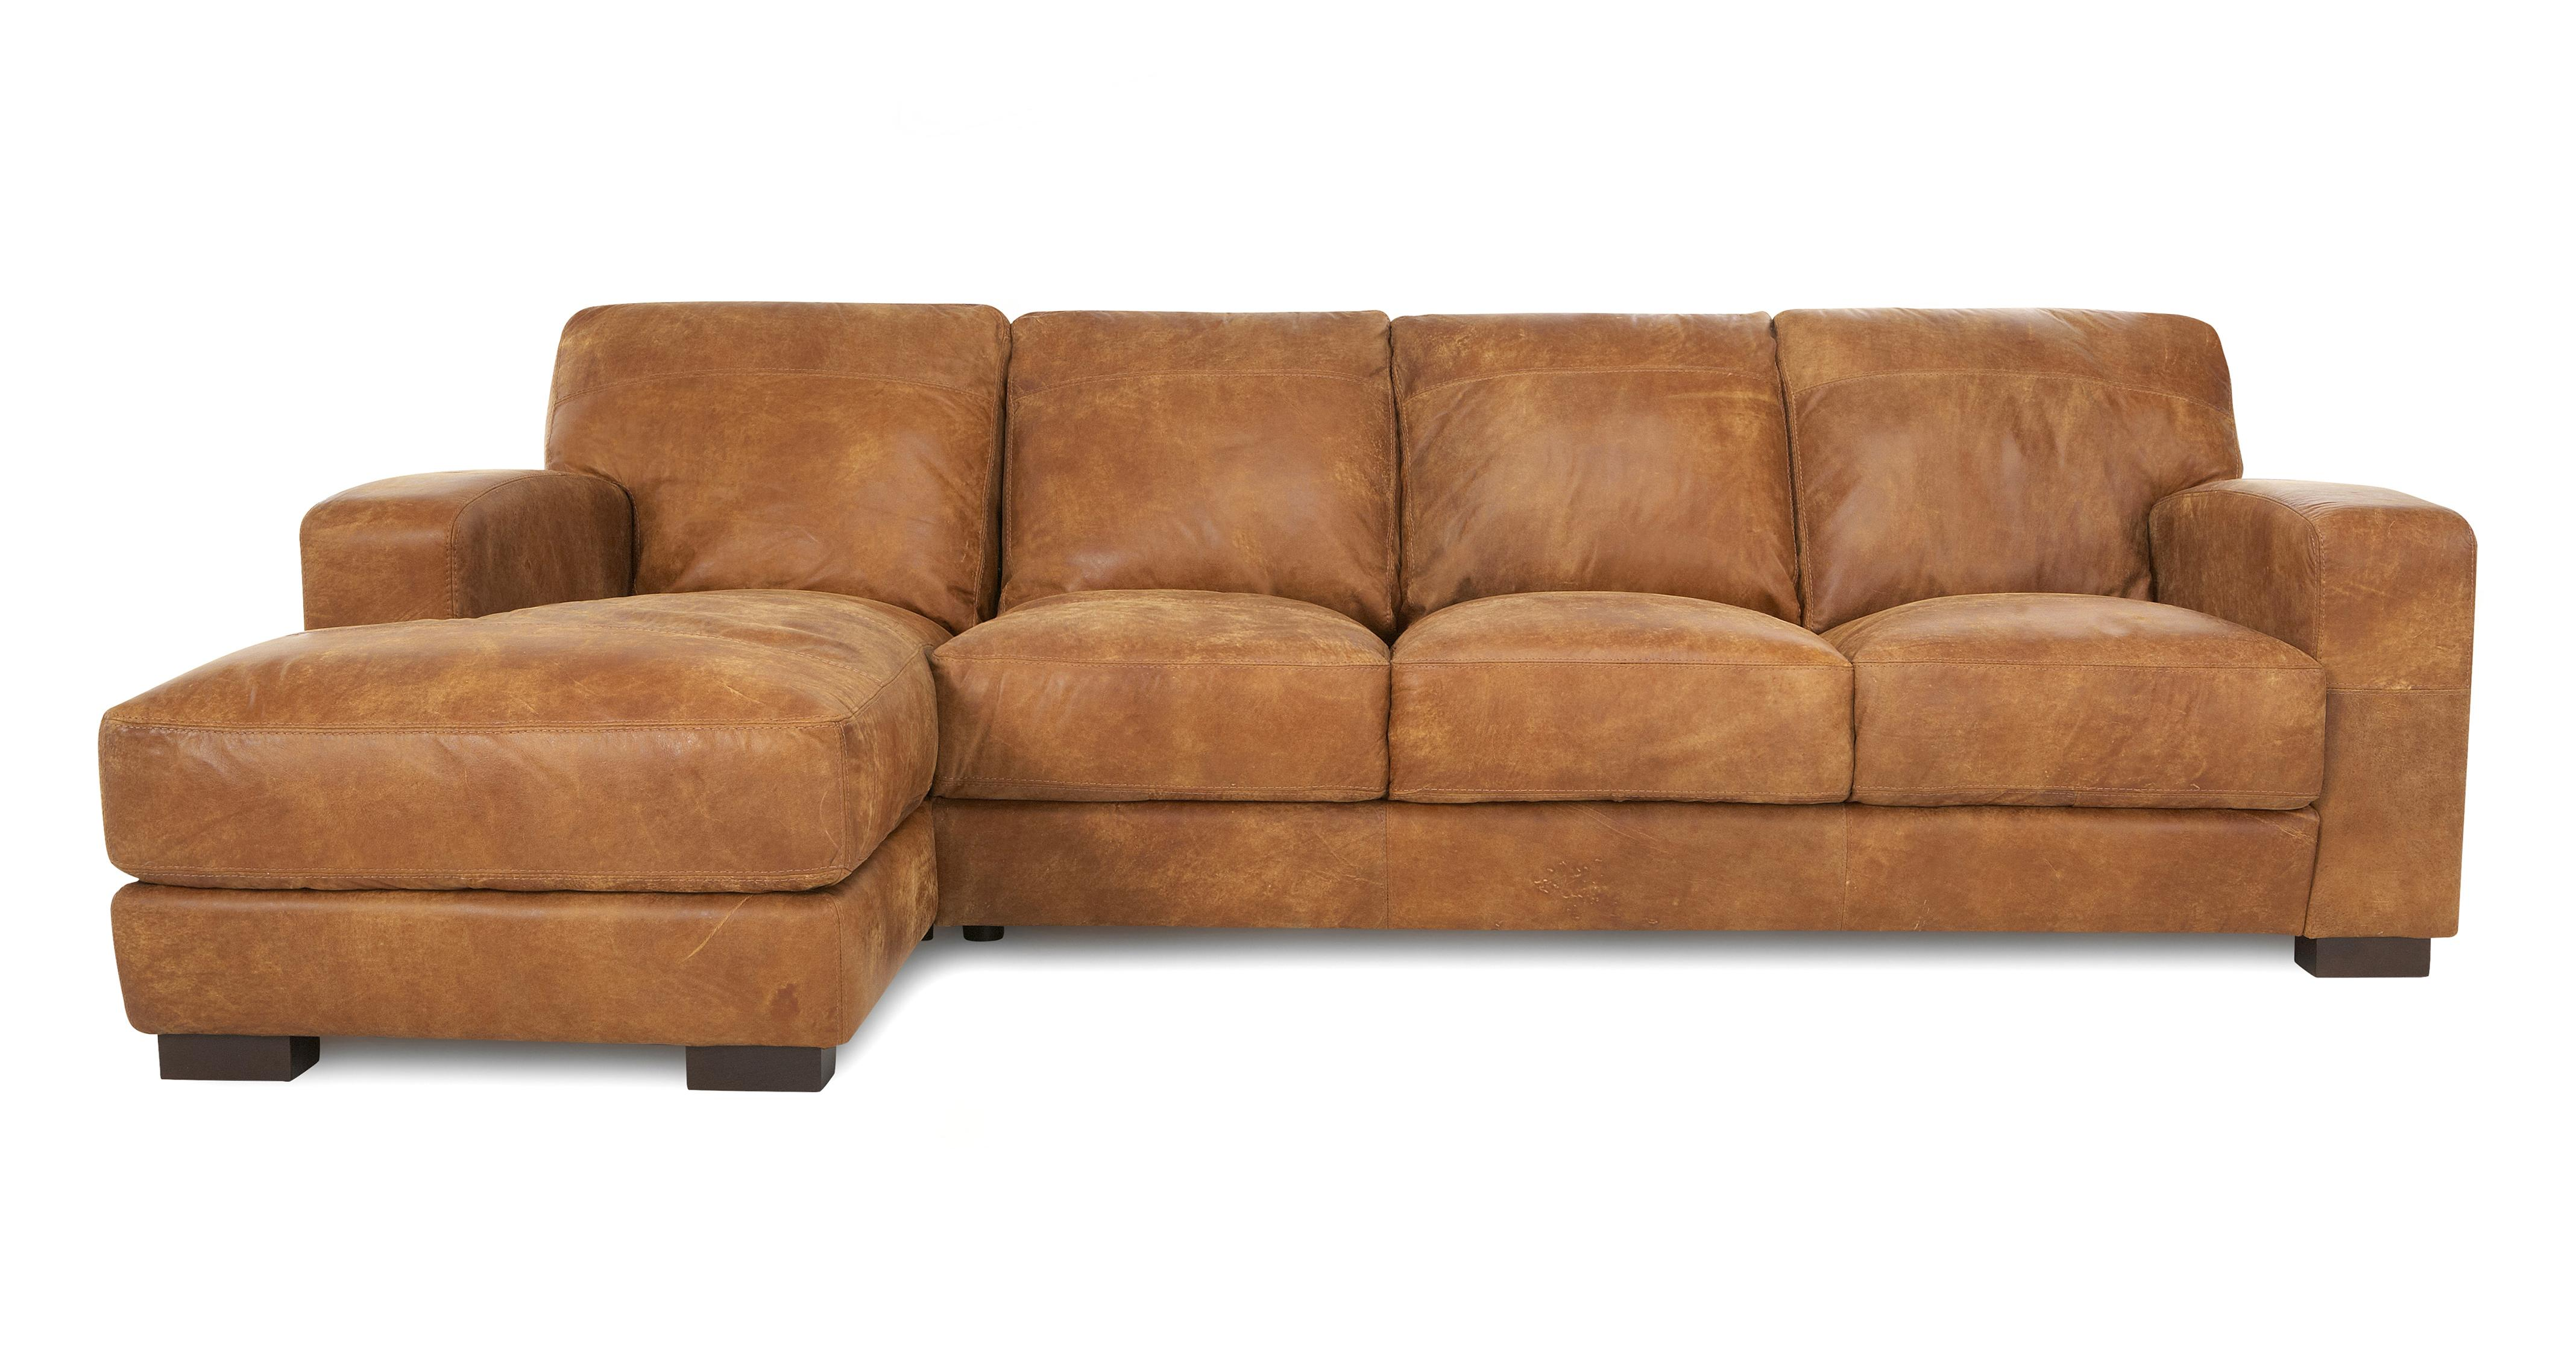 Large corner sofa with chaise end for Chaise end sofa